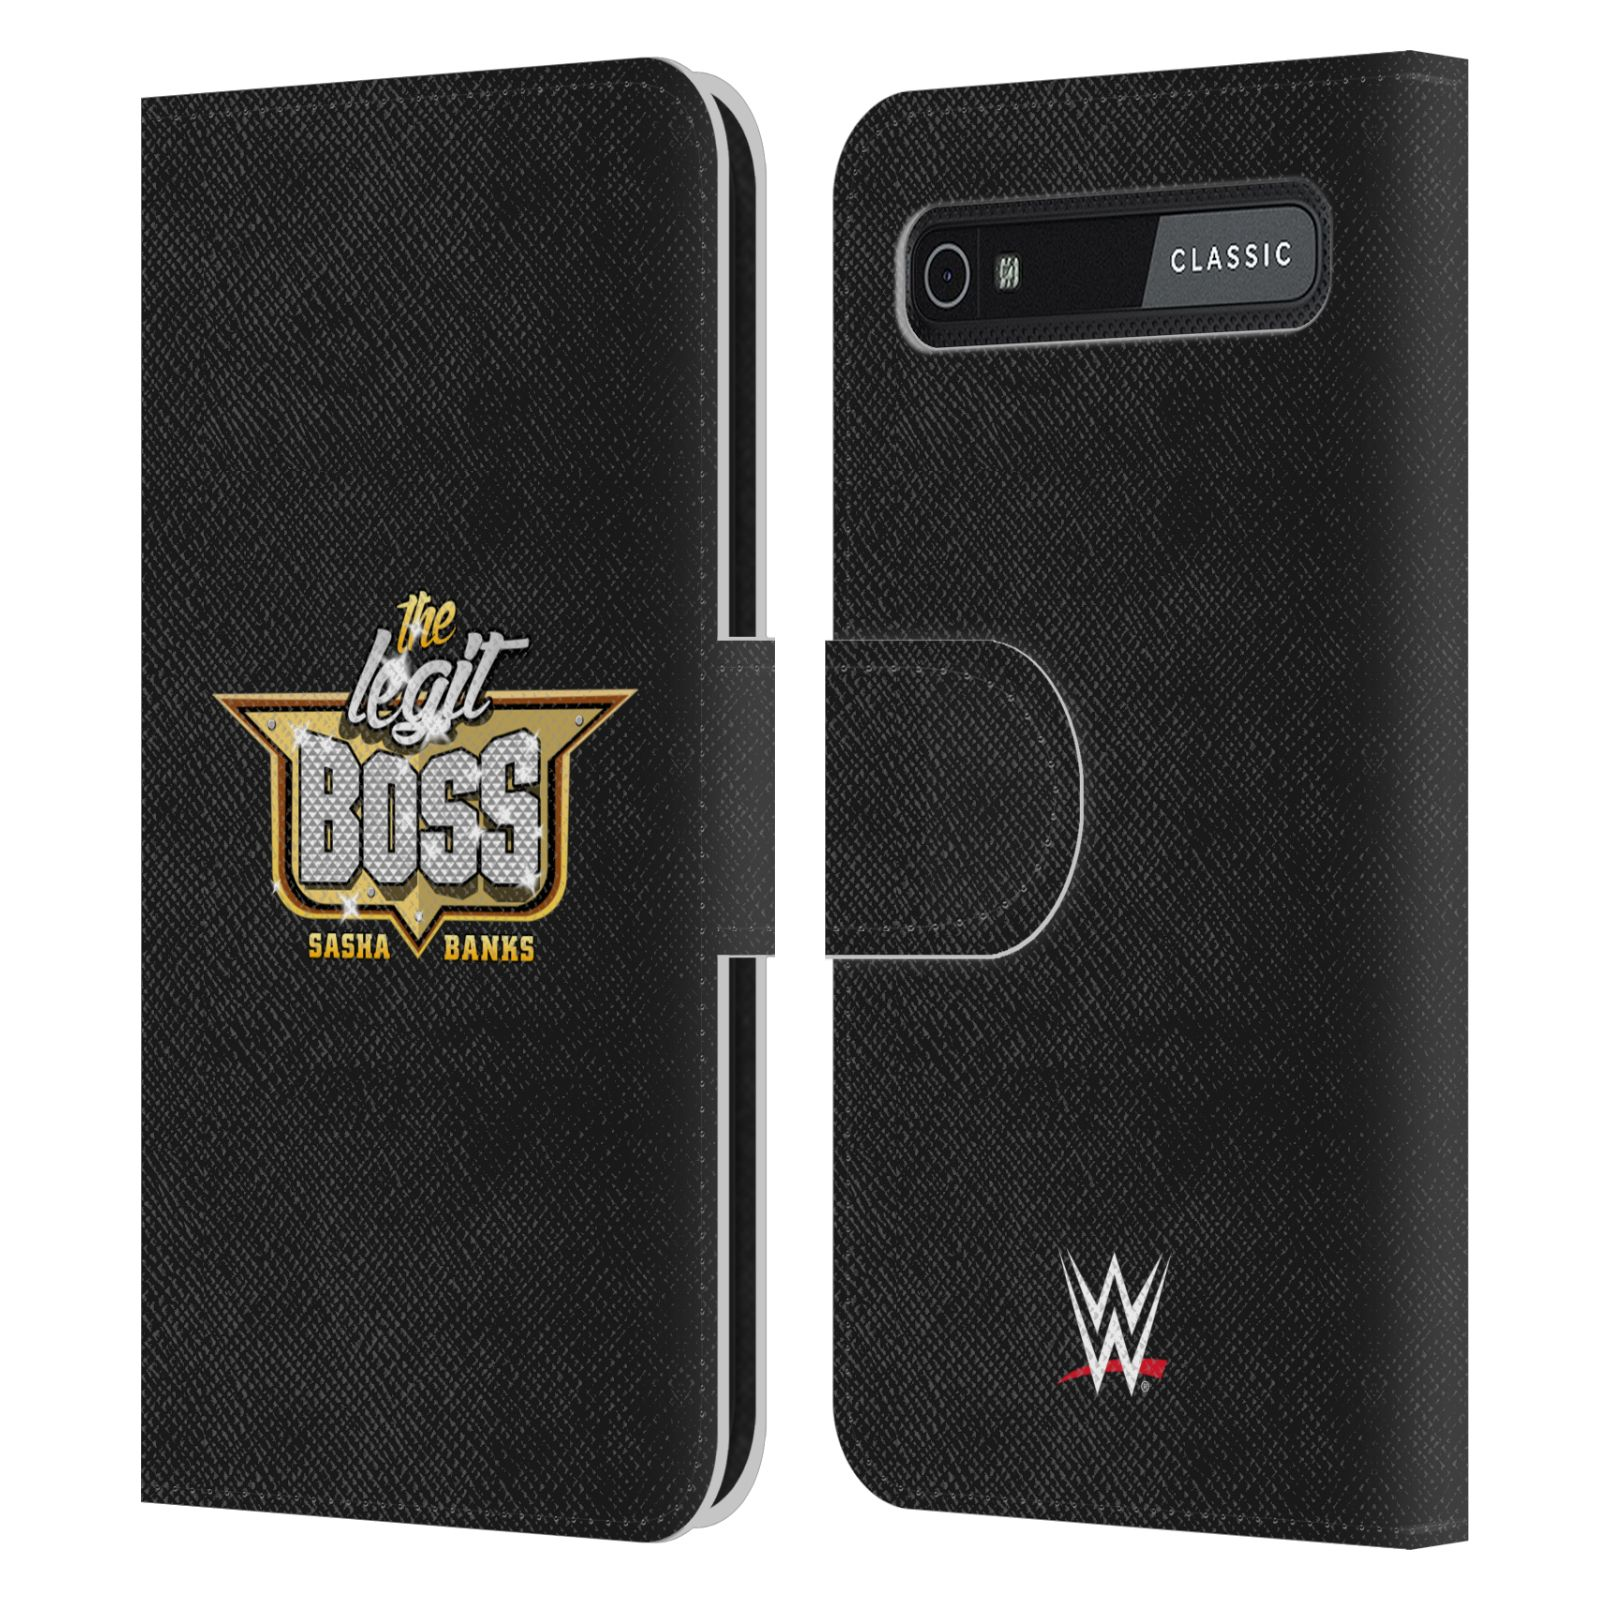 Book Cover Black Berry : Official wwe sasha banks leather book case for blackberry